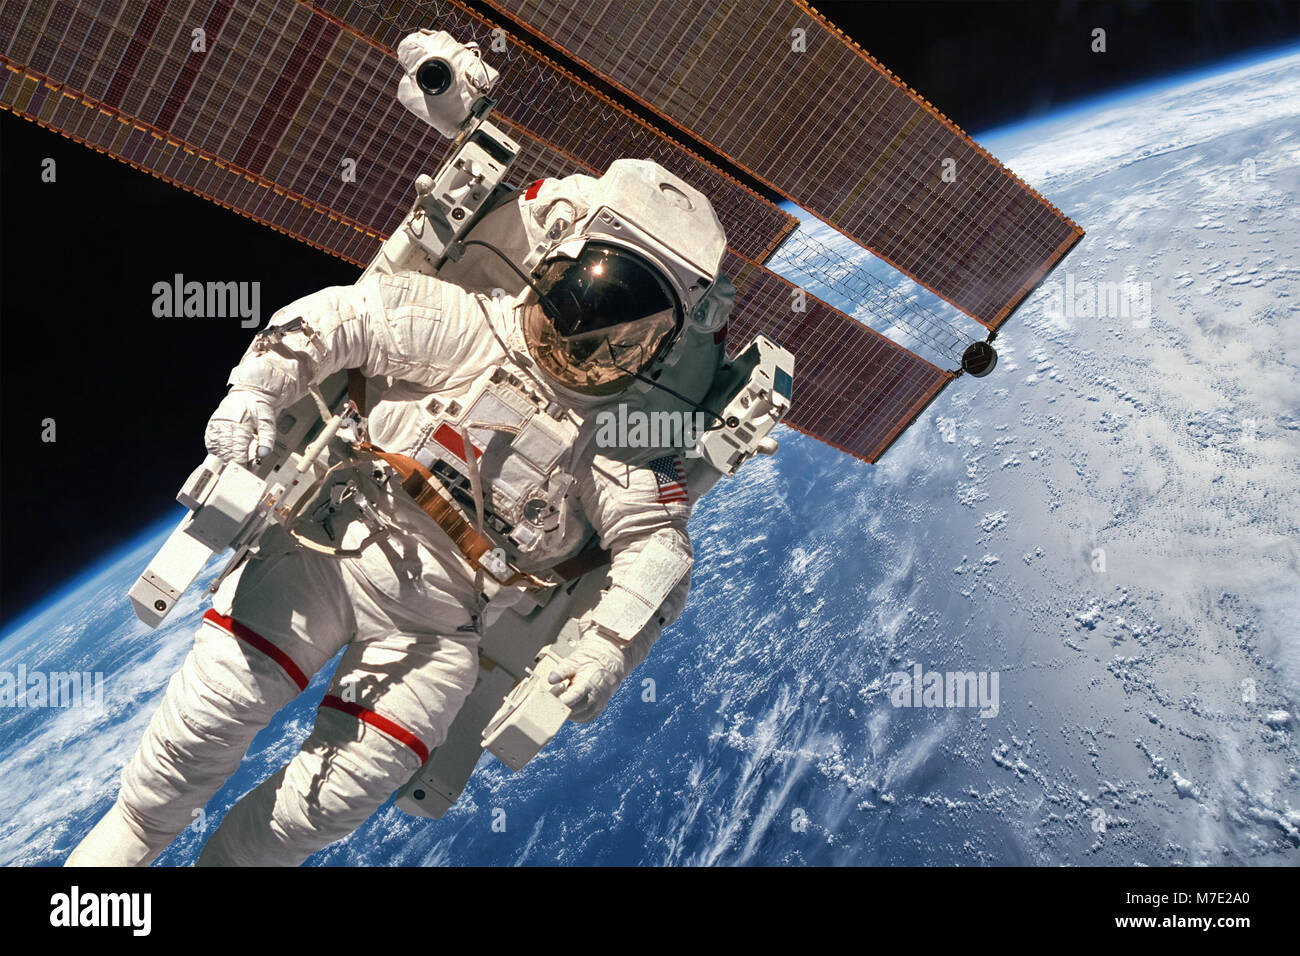 International Space Station and astronaut in outer space over the planet Earth. Elements of this image furnished - Stock Image